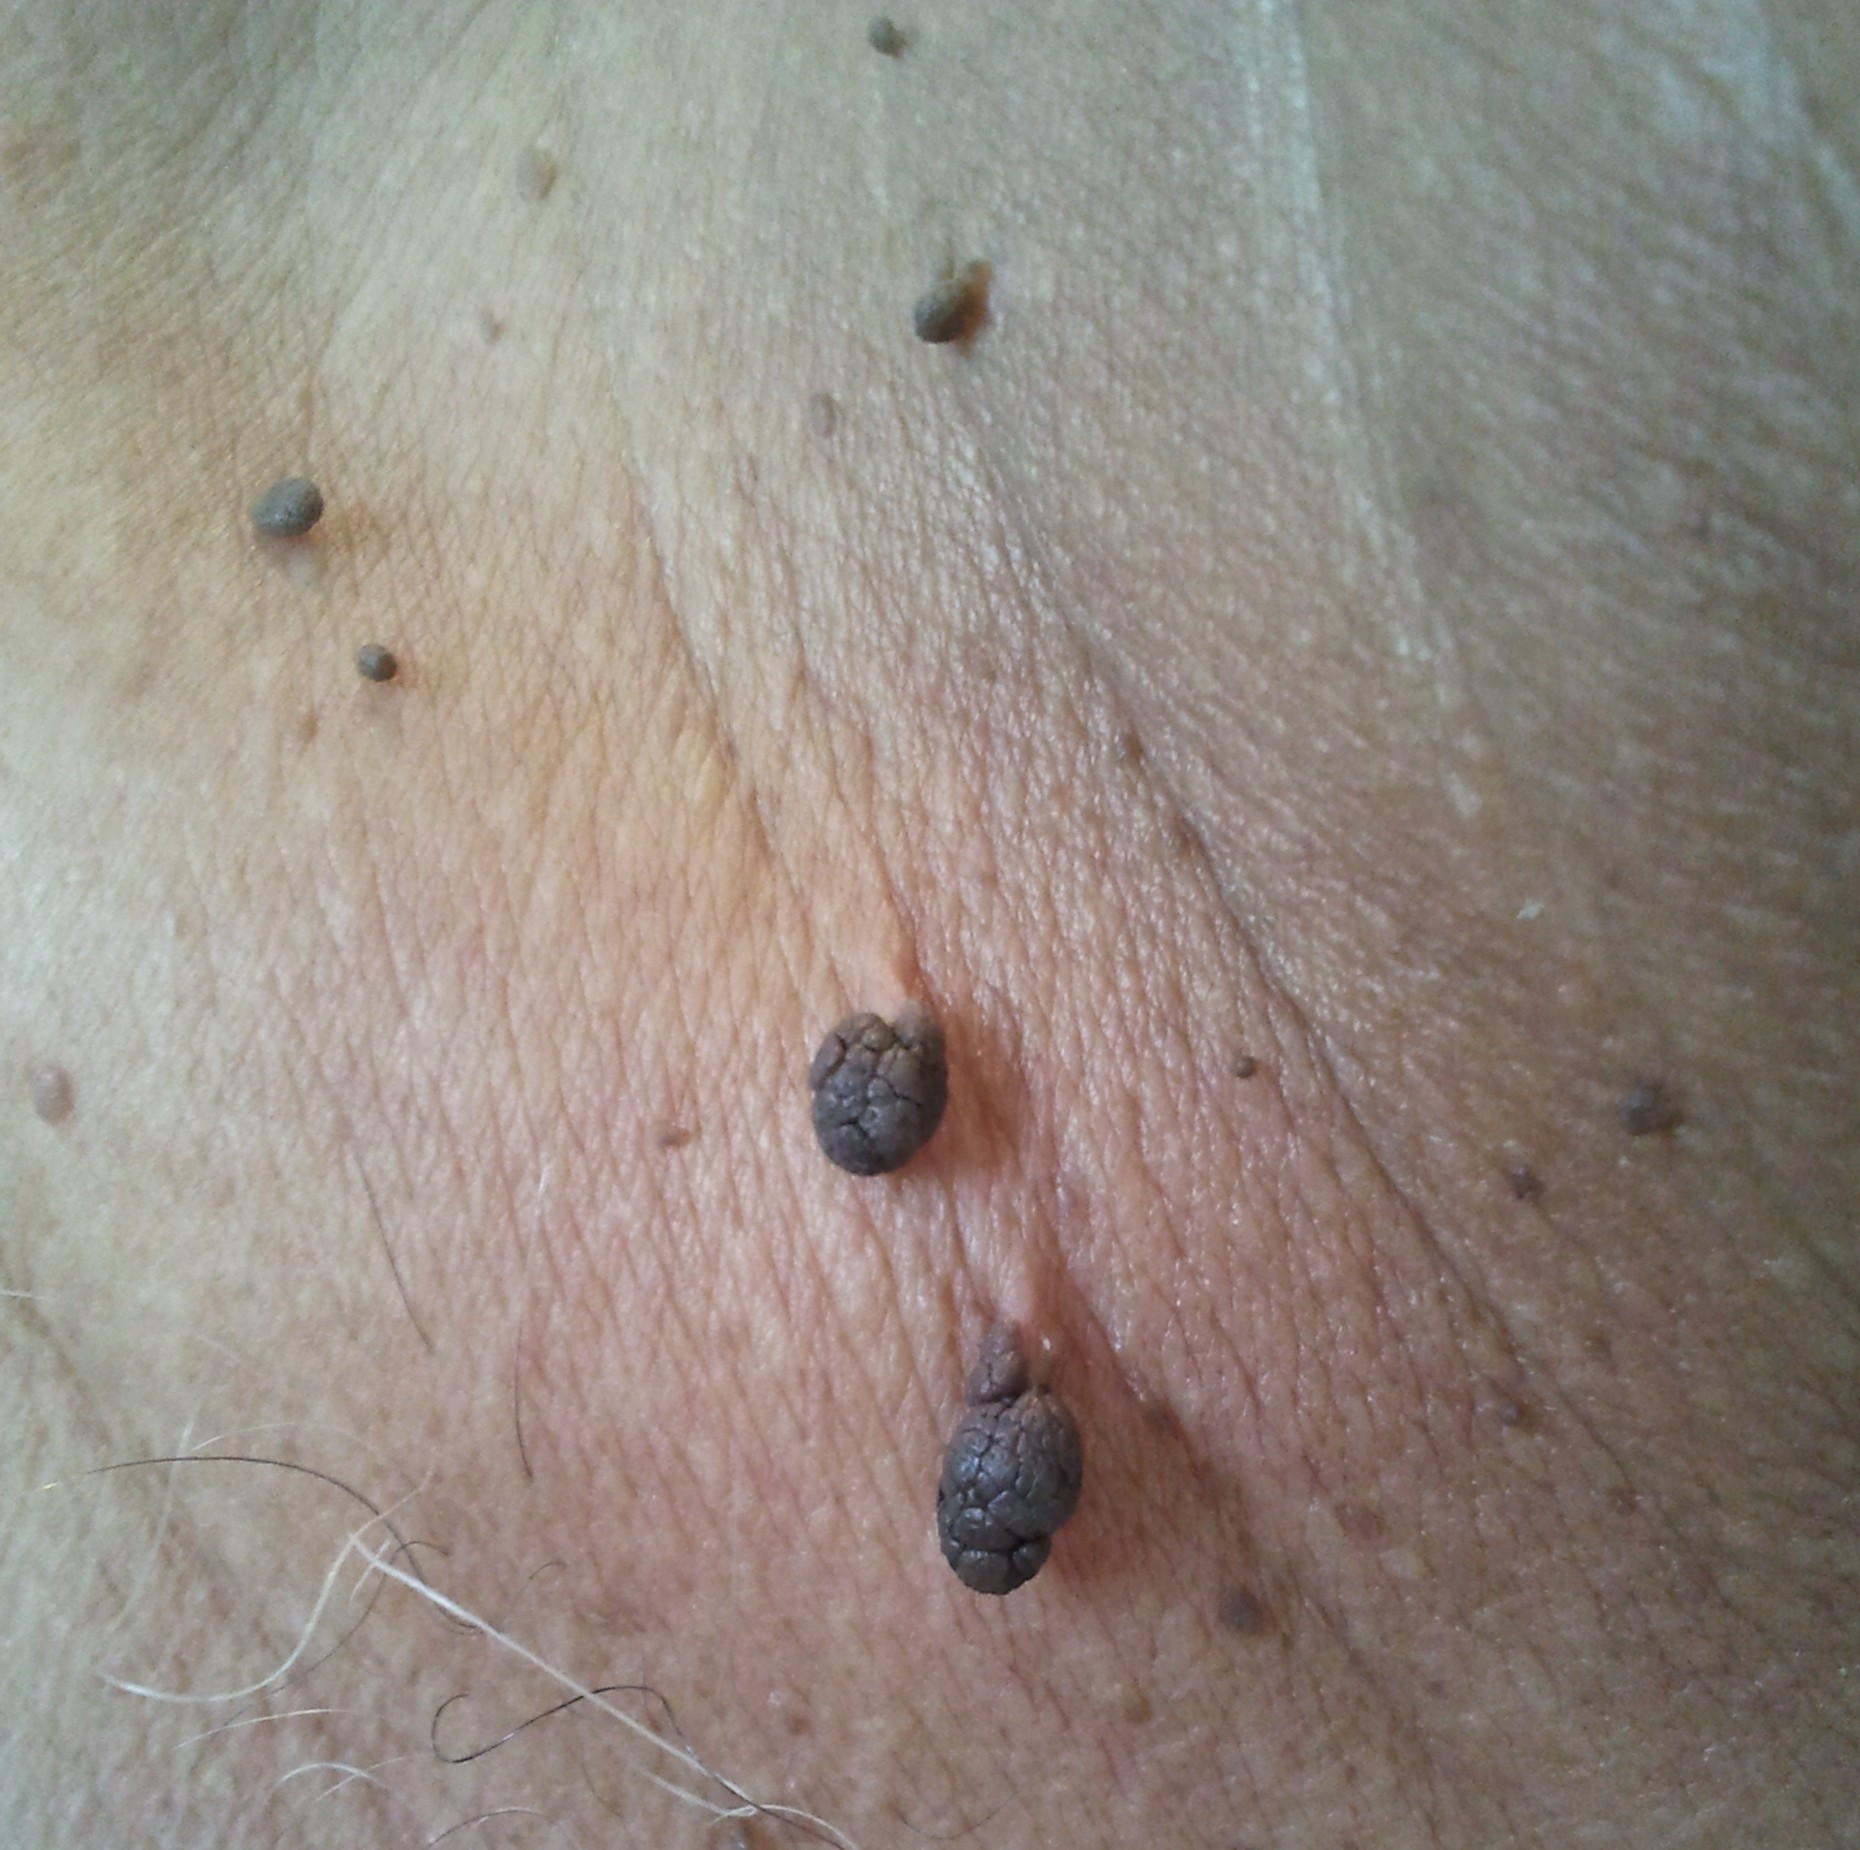 removing a skin tag